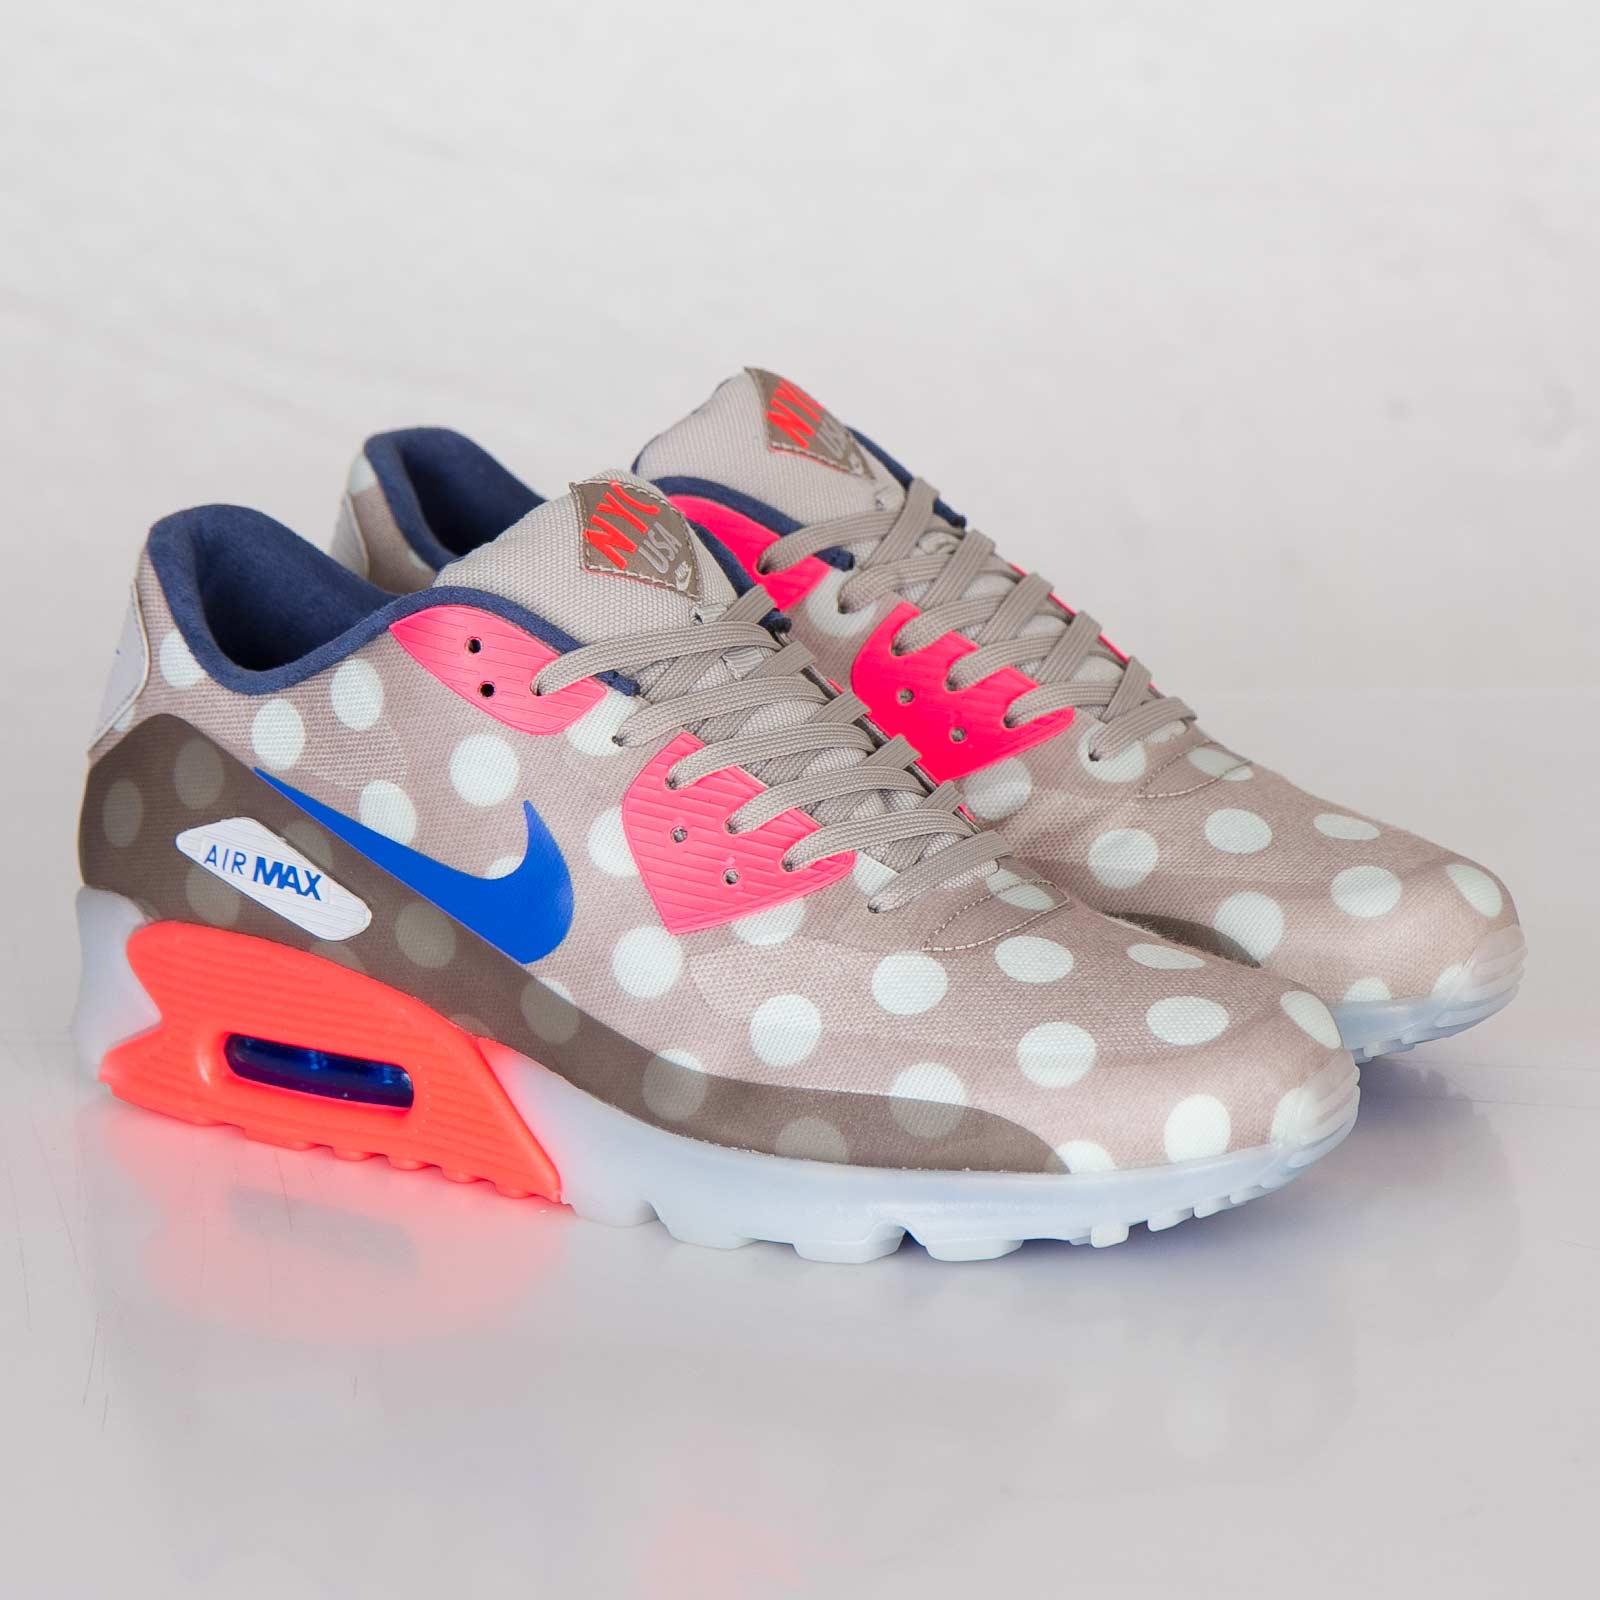 Nike Air Max 90 Ice City QS 667635 001 Sneakersnstuff